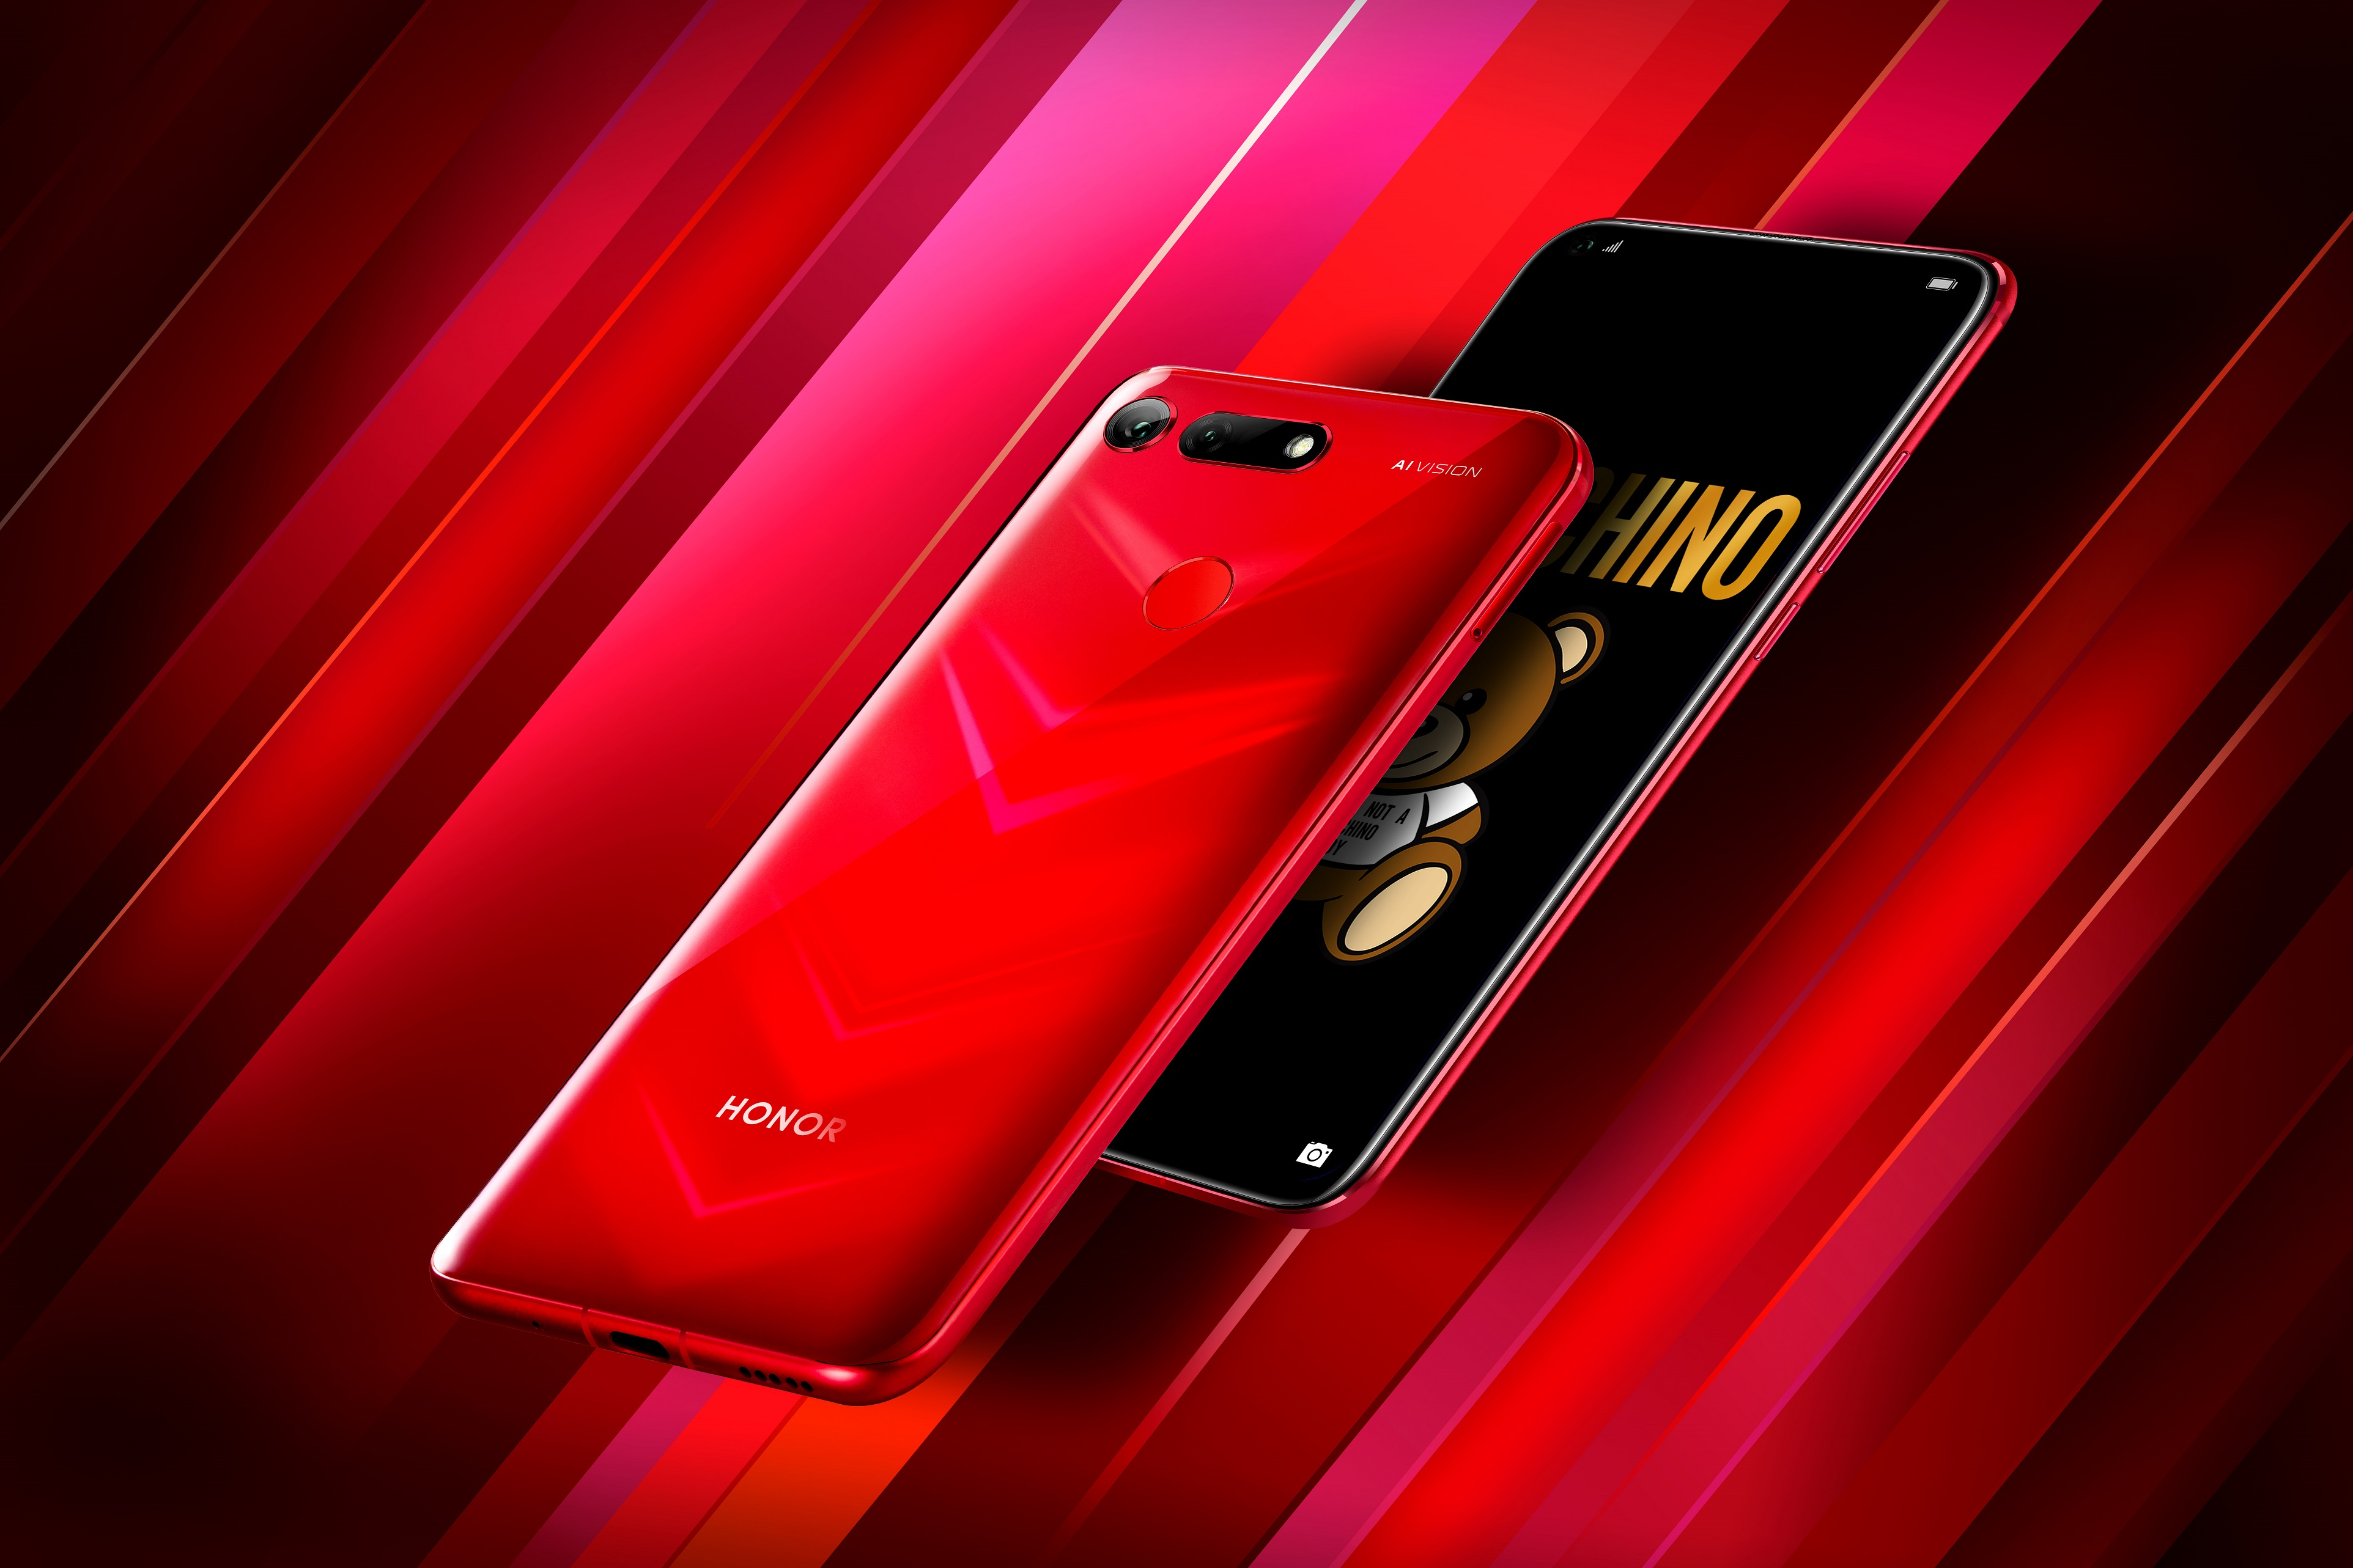 HONOR View20 rouge : 1er smartphone au monde doté d'un appareil photo 48 Mpx